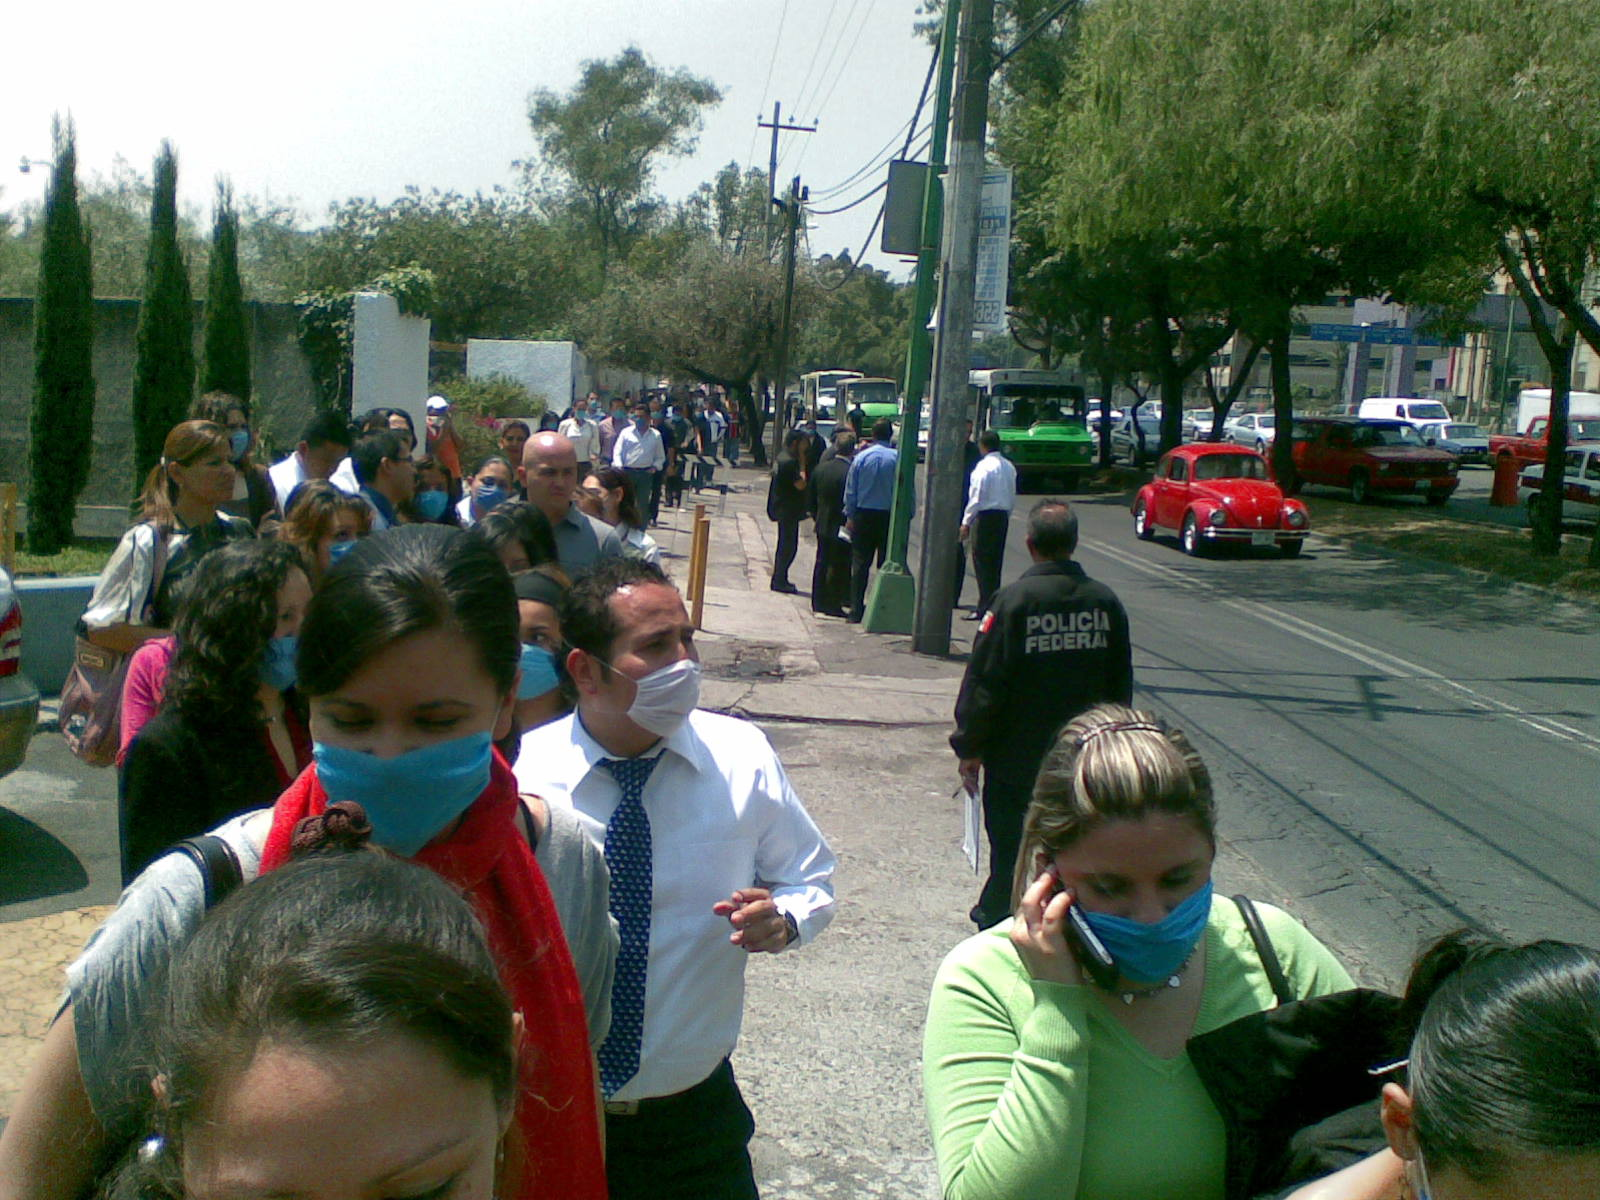 File:People waring face masks in Mexico-27April2009.jpg - Wikimedia Commons